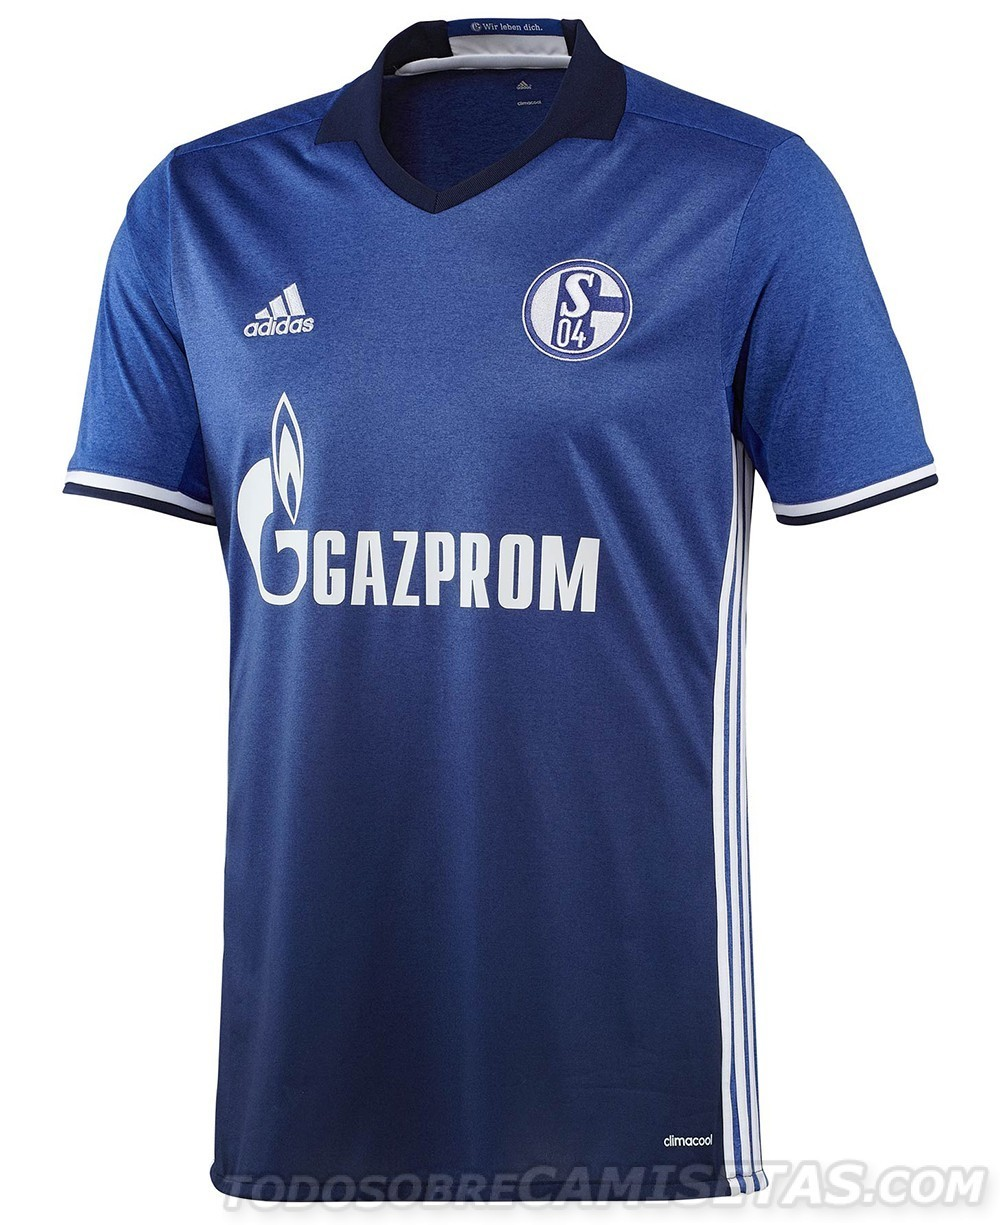 Schalke-04-16-17-adidas-home-kit-2.jpg